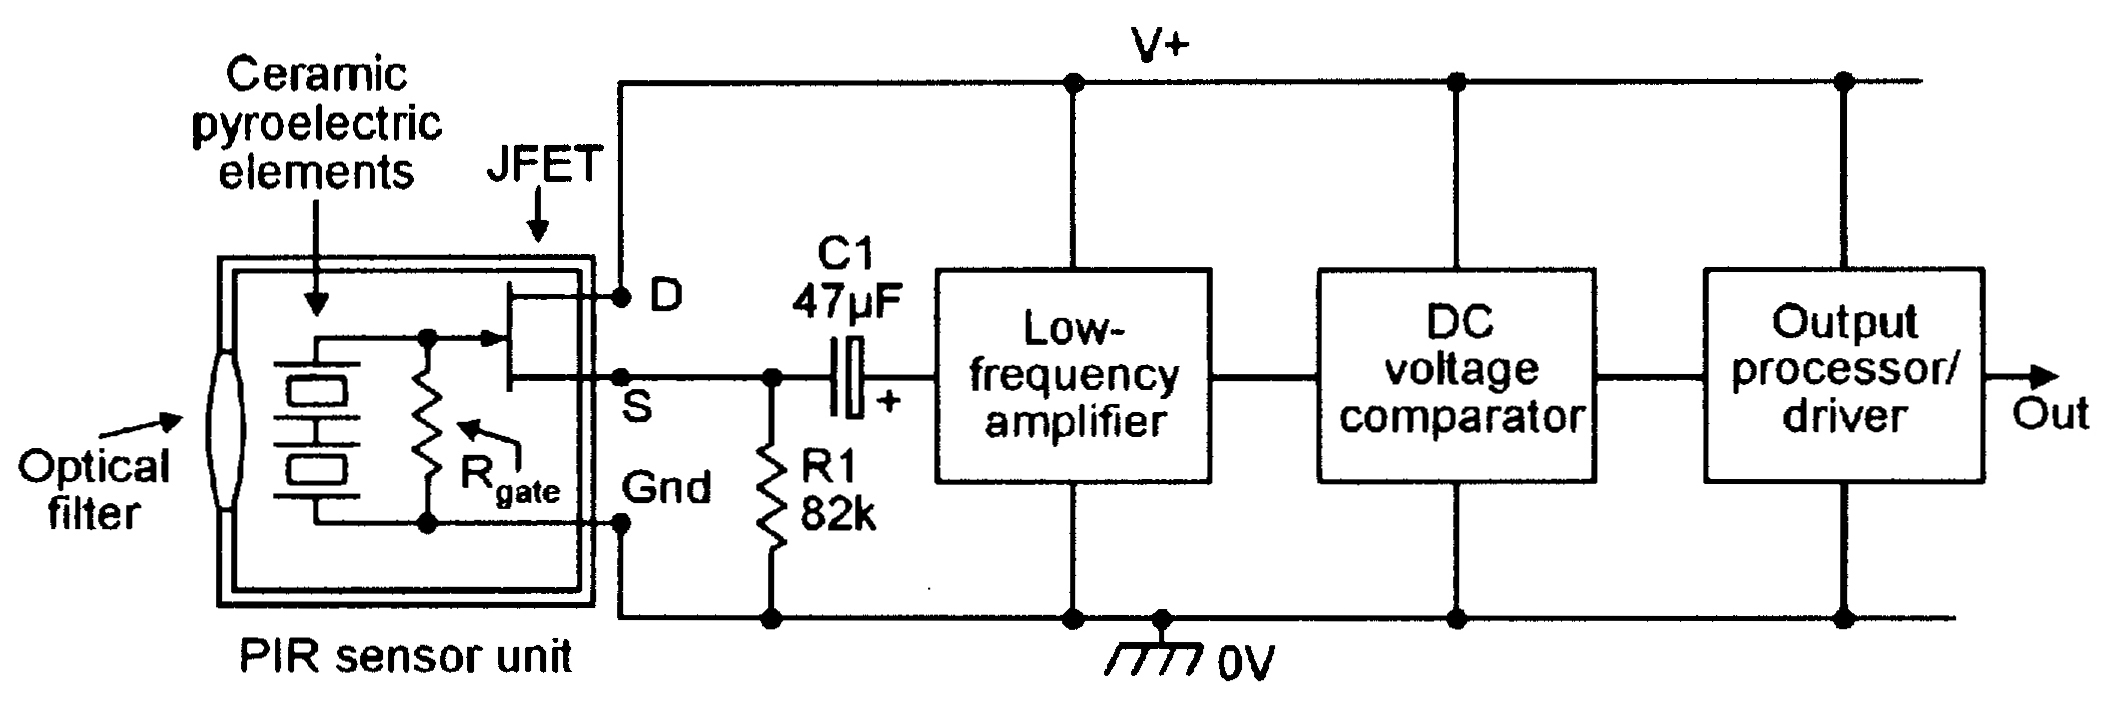 Light Sensitive Circuits Nuts Volts Magazine Balanced Bridge Voltmeters Electronic And Diagram Pir Movement Detecting Systems